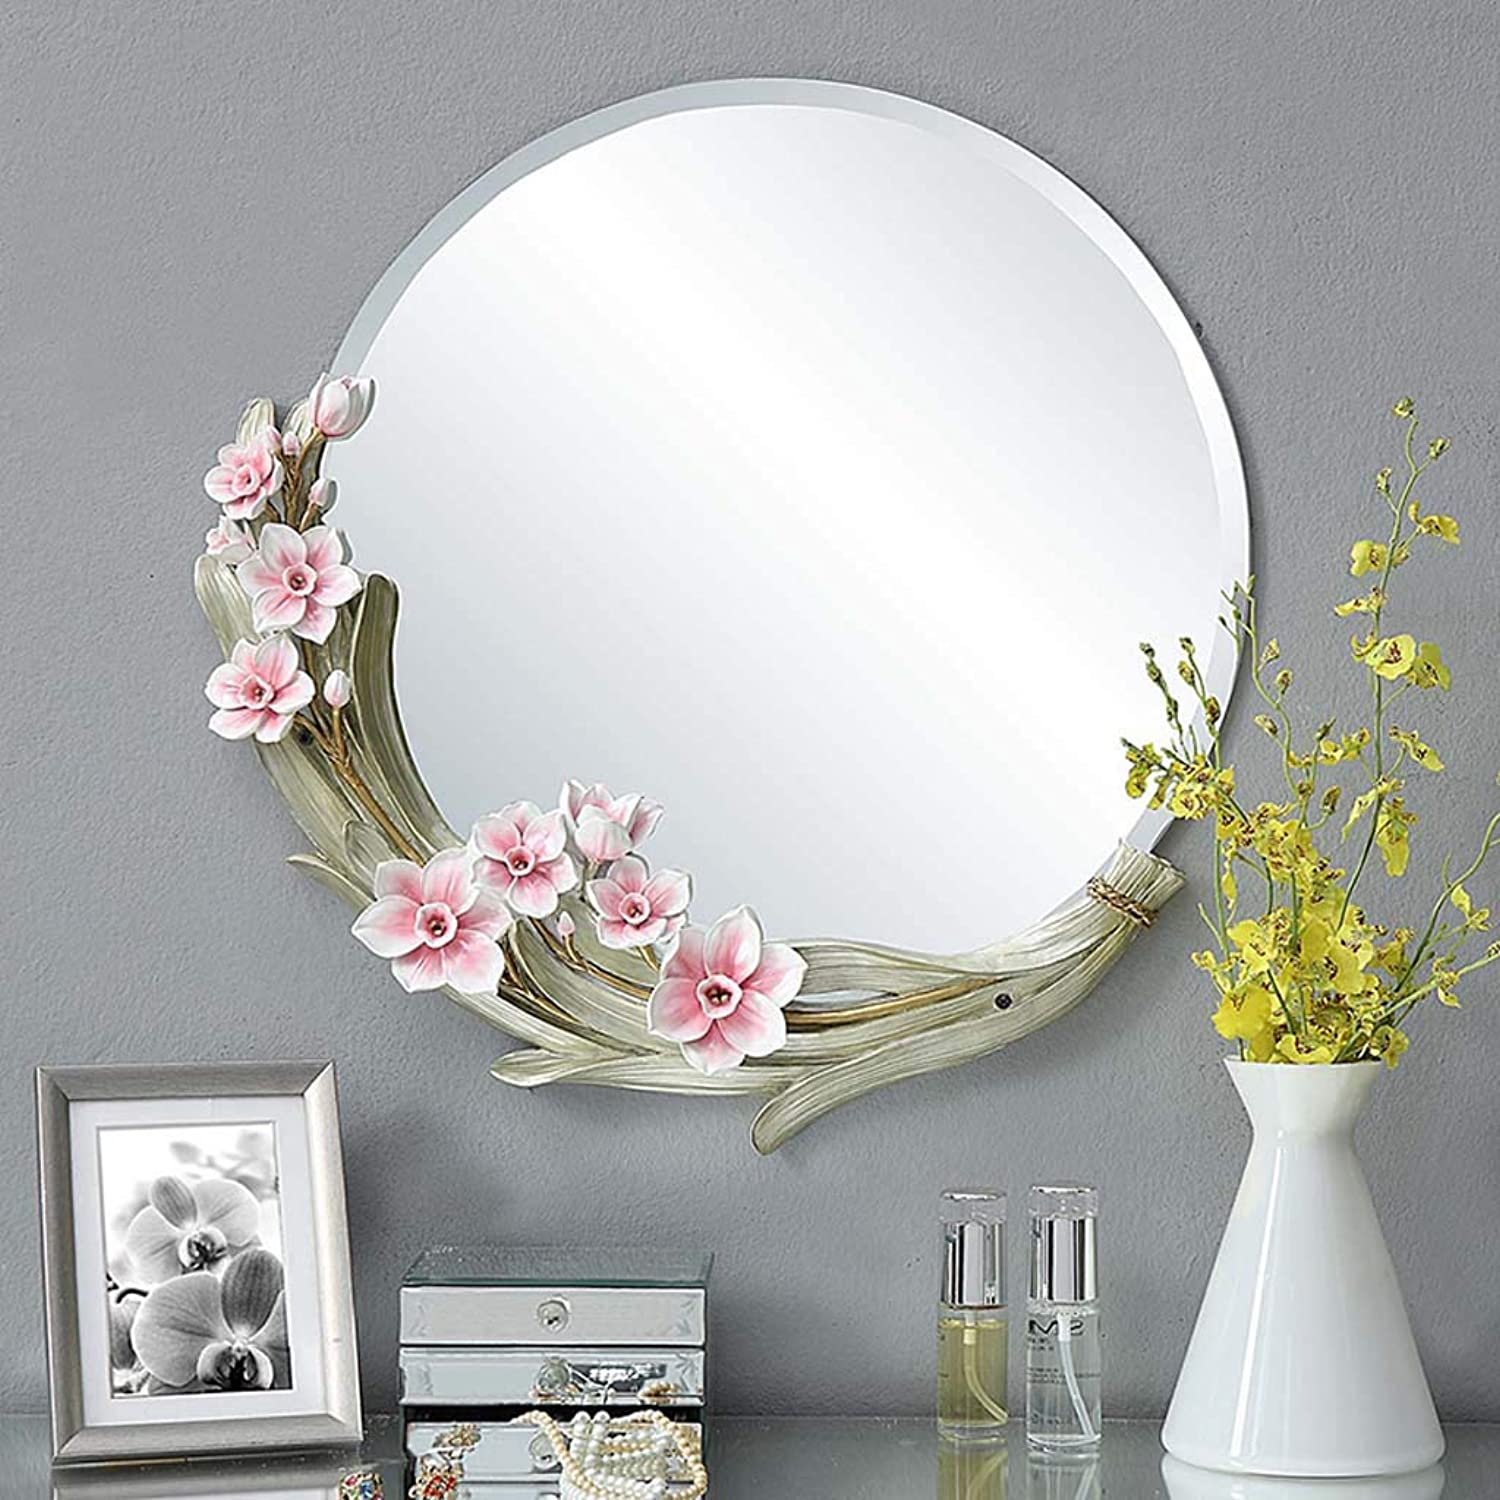 Decorative Mirror Wall Flower Frame Bathroom Mirror 56CM(22Inch) Simple Style Vanity Makeup Art Mirror for Entry Diningroom Bedroom